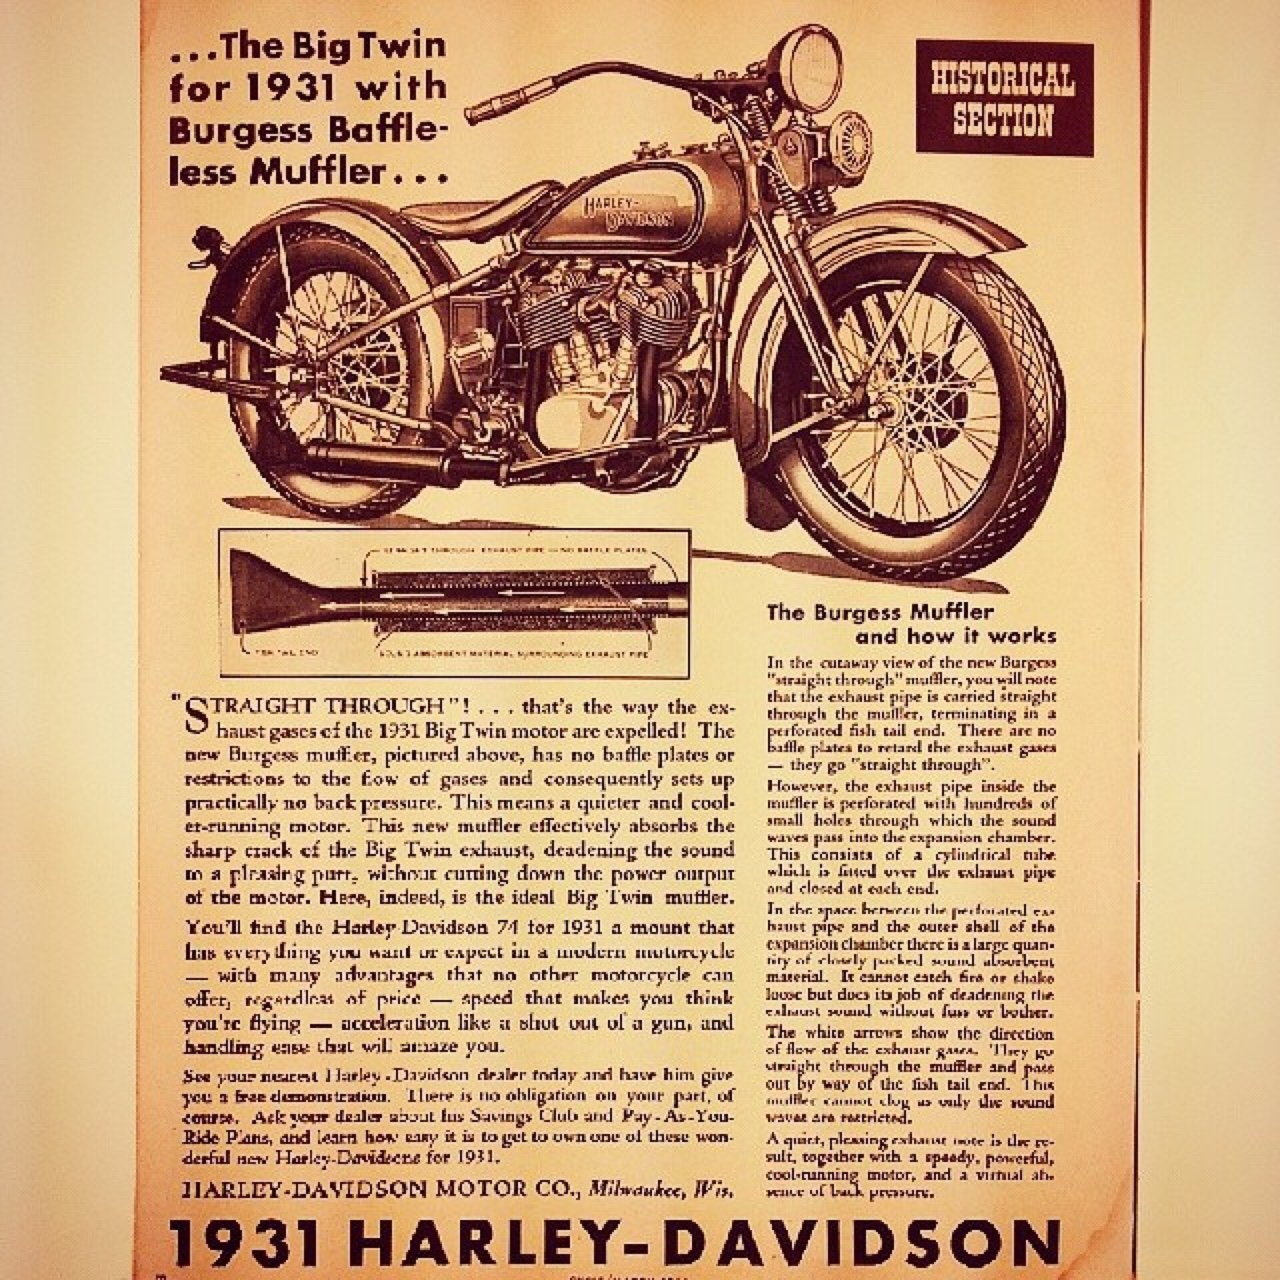 The Big Twin for 1931